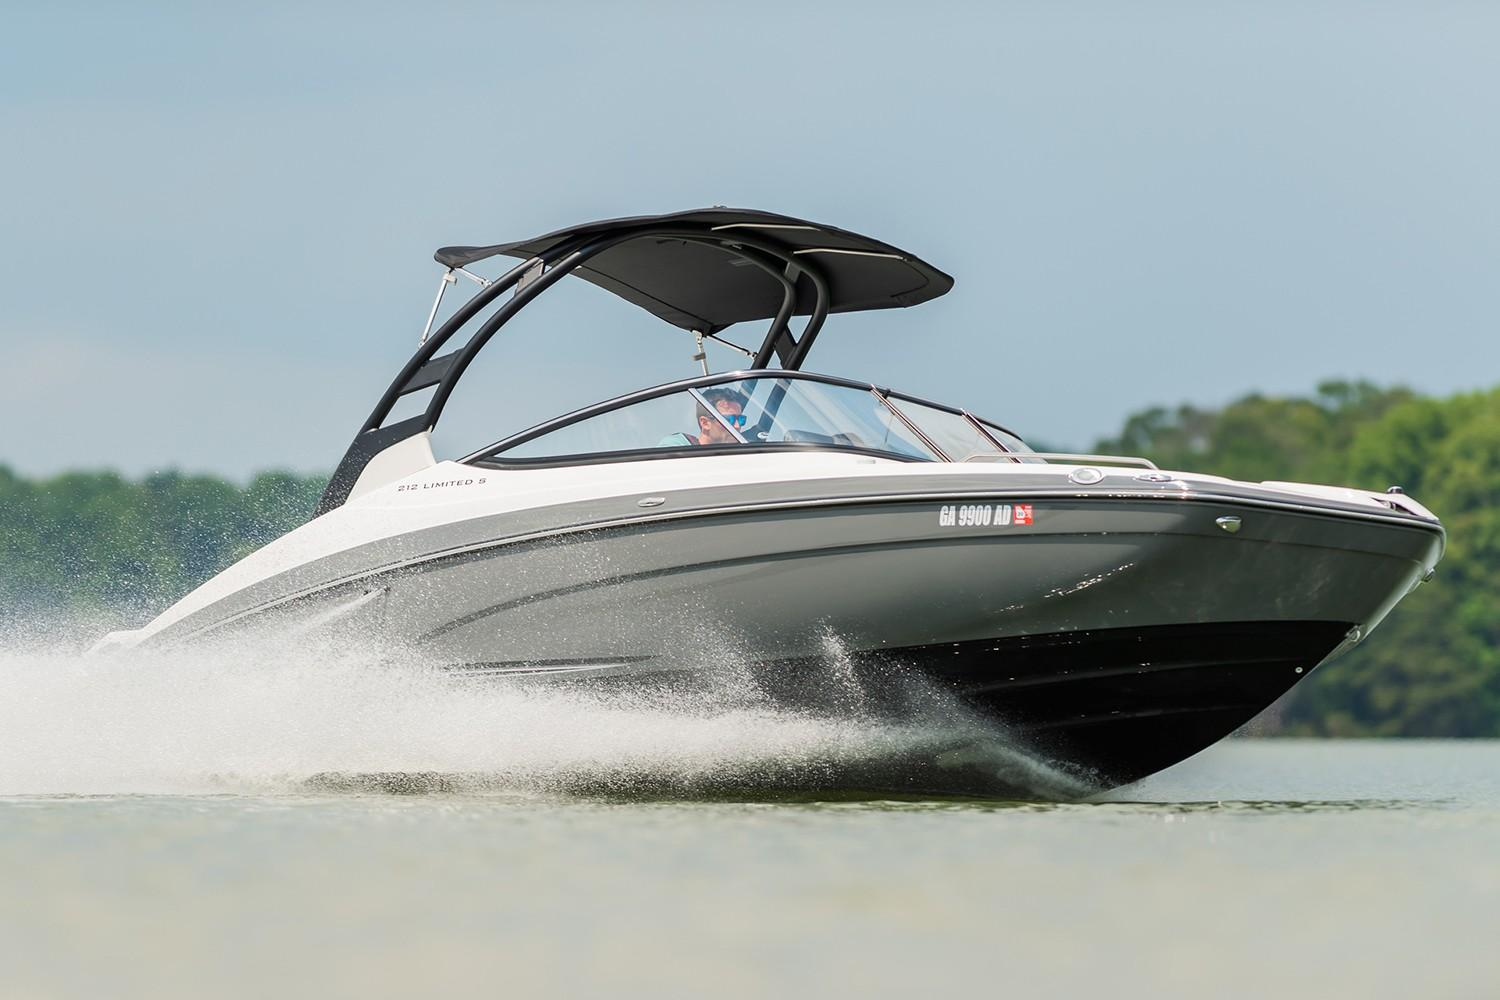 2019 Yamaha 212 Limited S in Gulfport, Mississippi - Photo 2